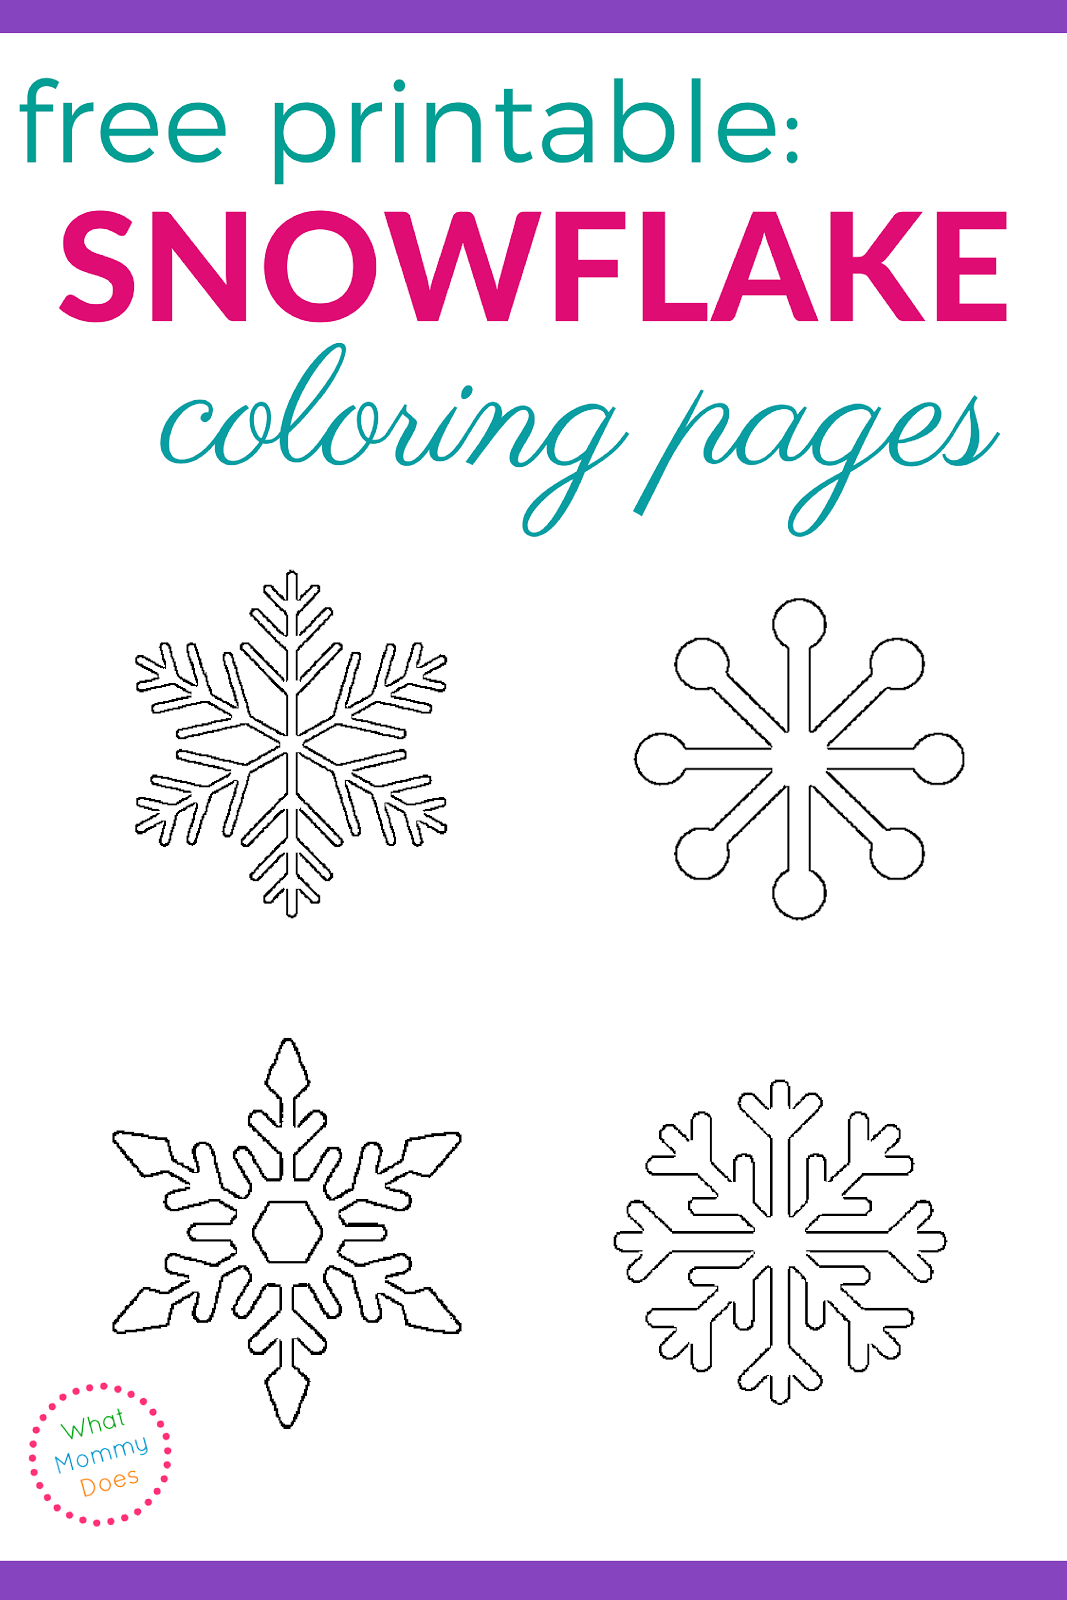 Free printable snowflake coloring pages what mommy does for Snowflakes printable coloring pages